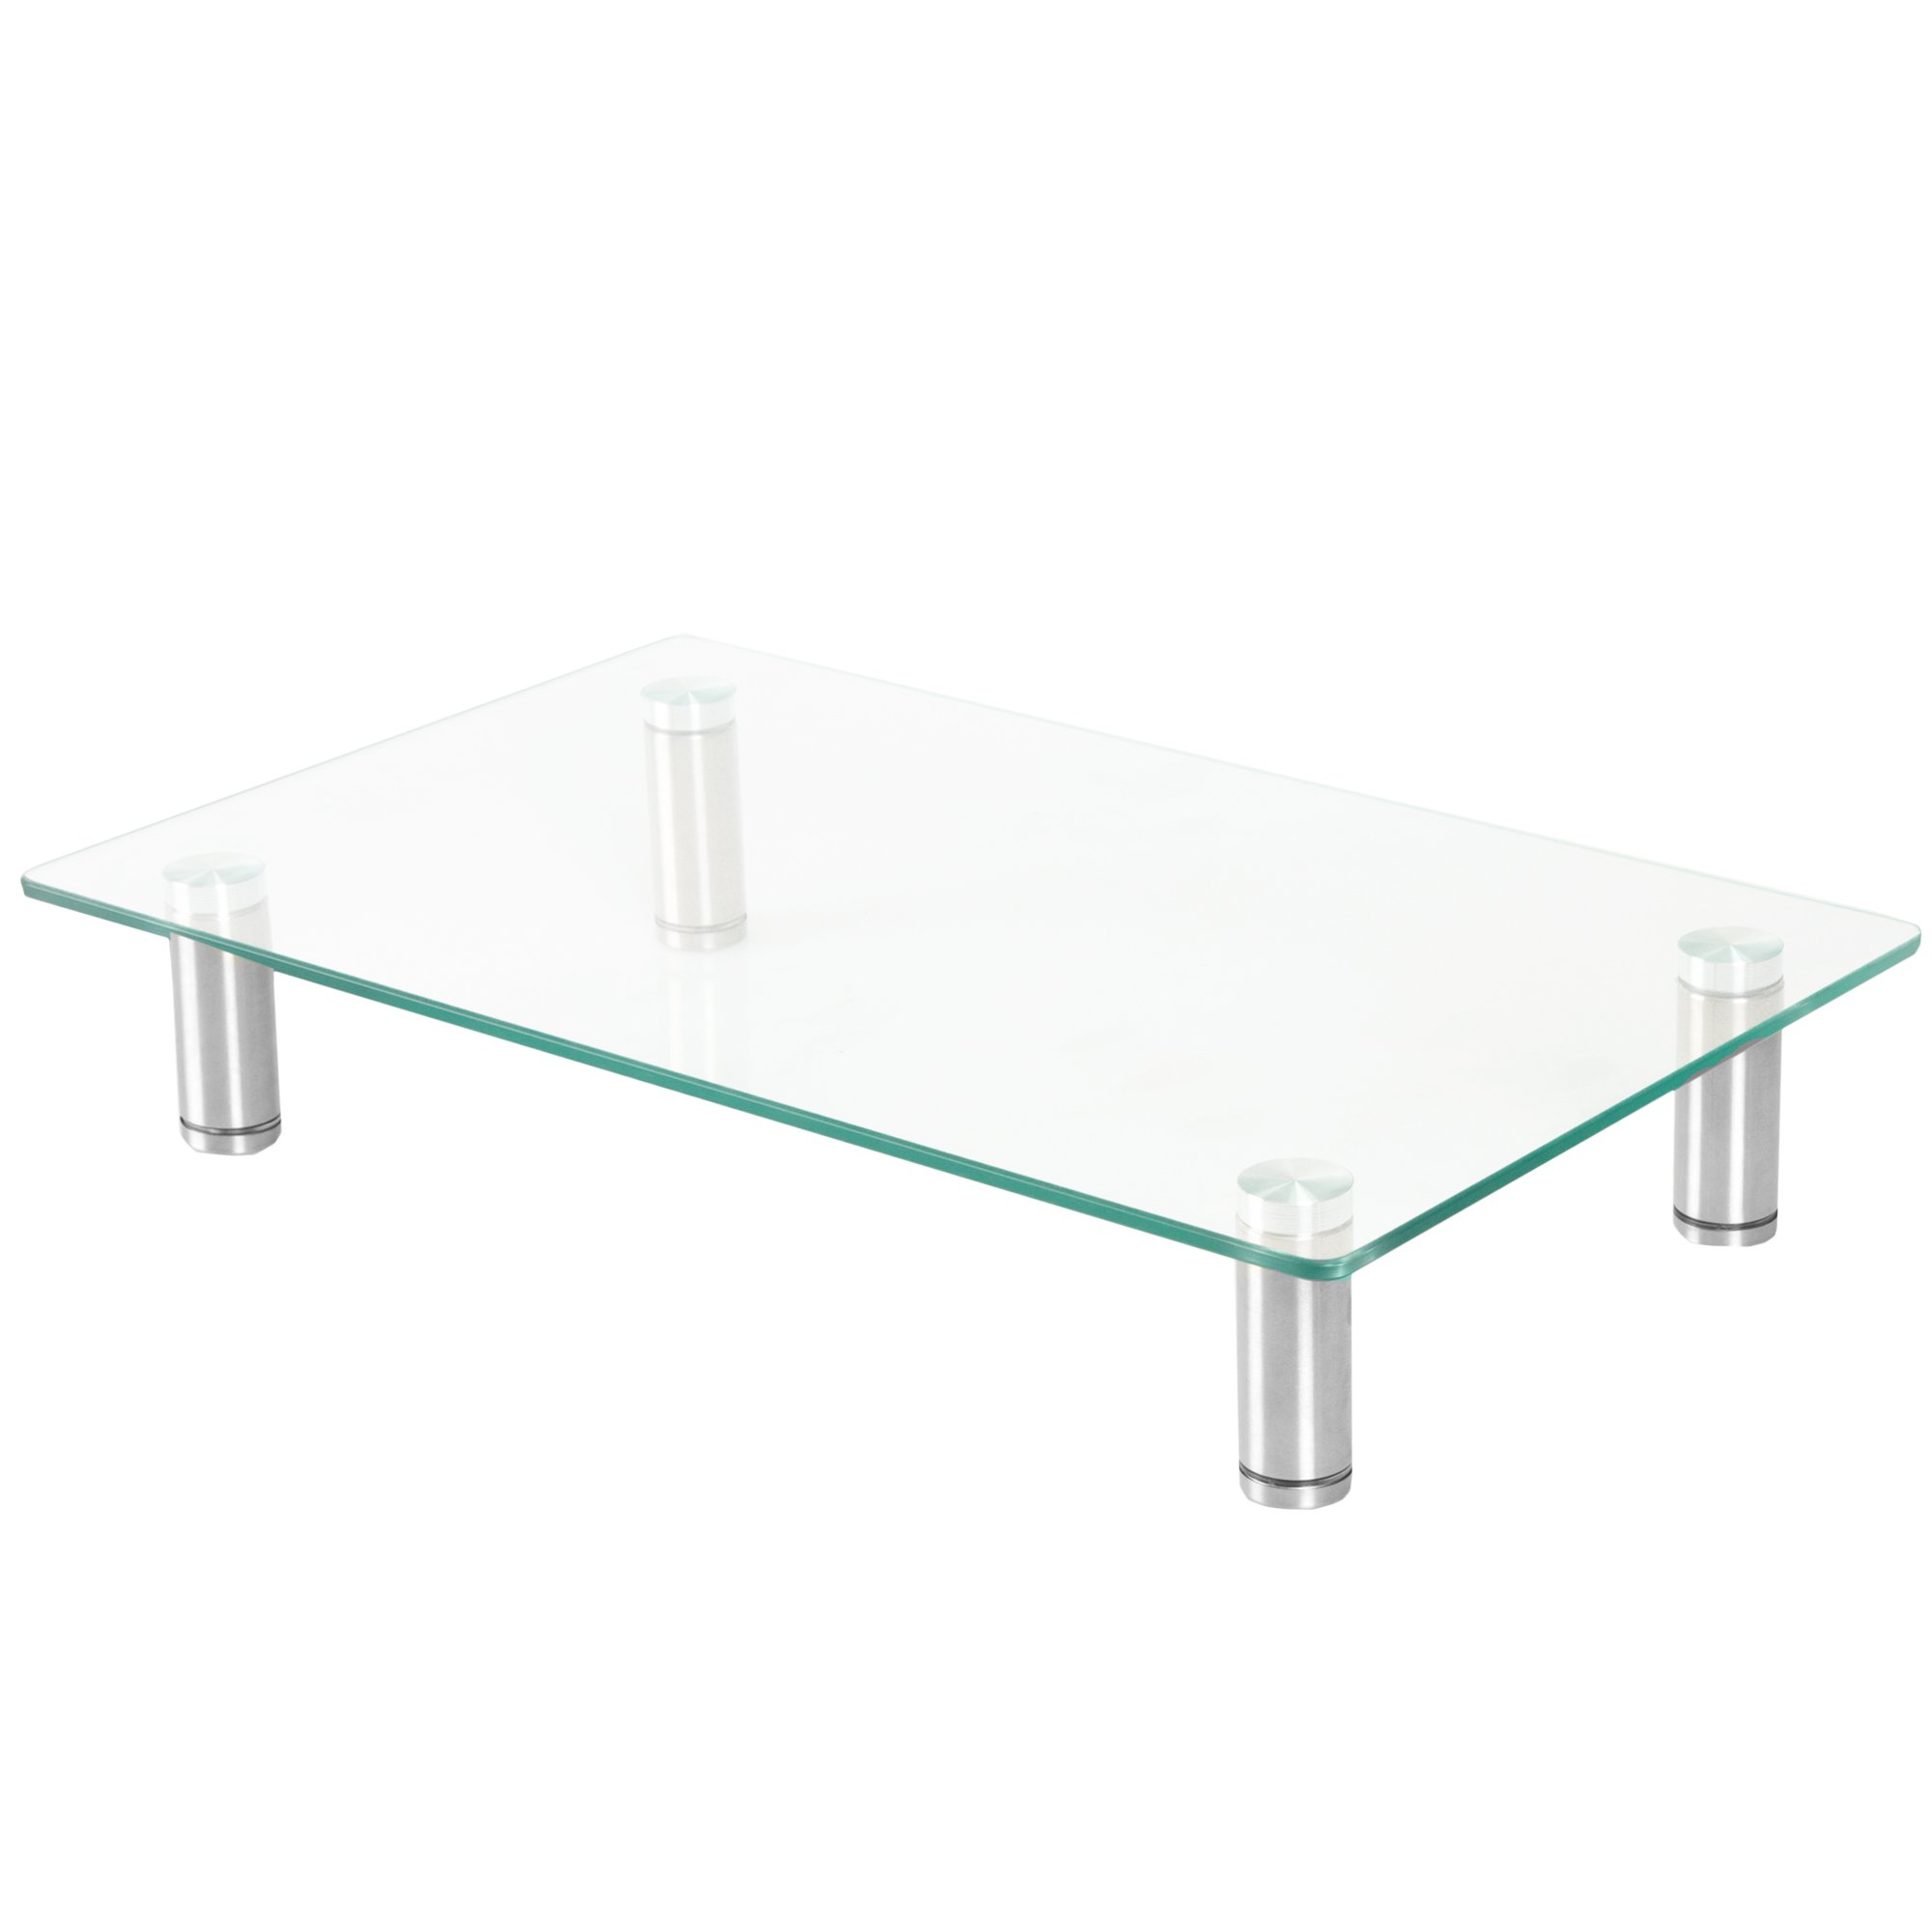 Glass Monitor Stand Riser - 16 x 9.5 Inch Desktop Stand for Computer Monitors, Laptop & More